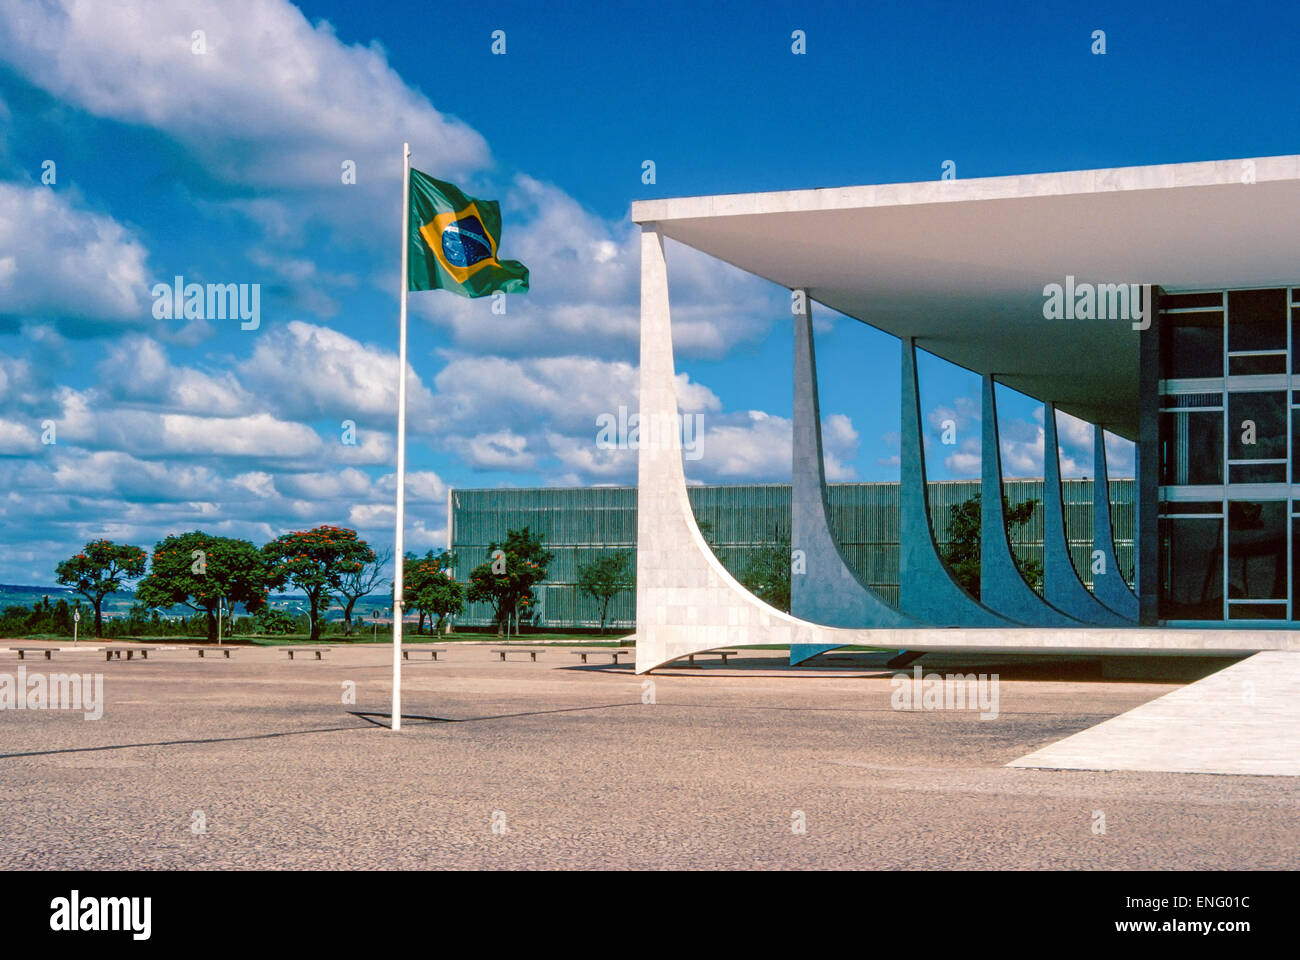 Brazil, Brasilia, the Alvorada palace, residence of the President of the Republic - Stock Image